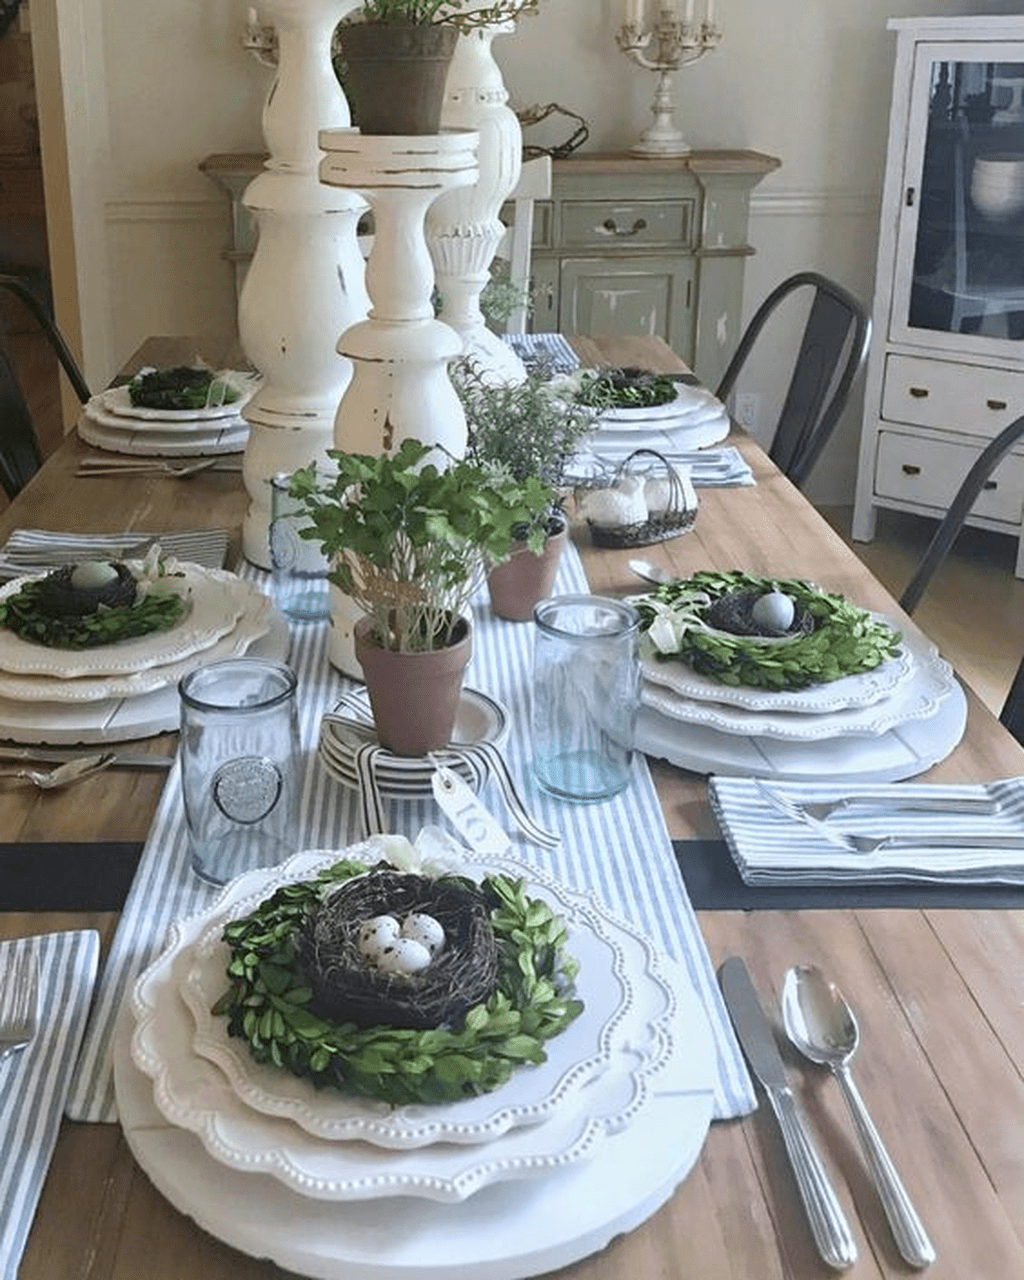 Inspiring Spring Table Centerpieces Best For Dining Room 26